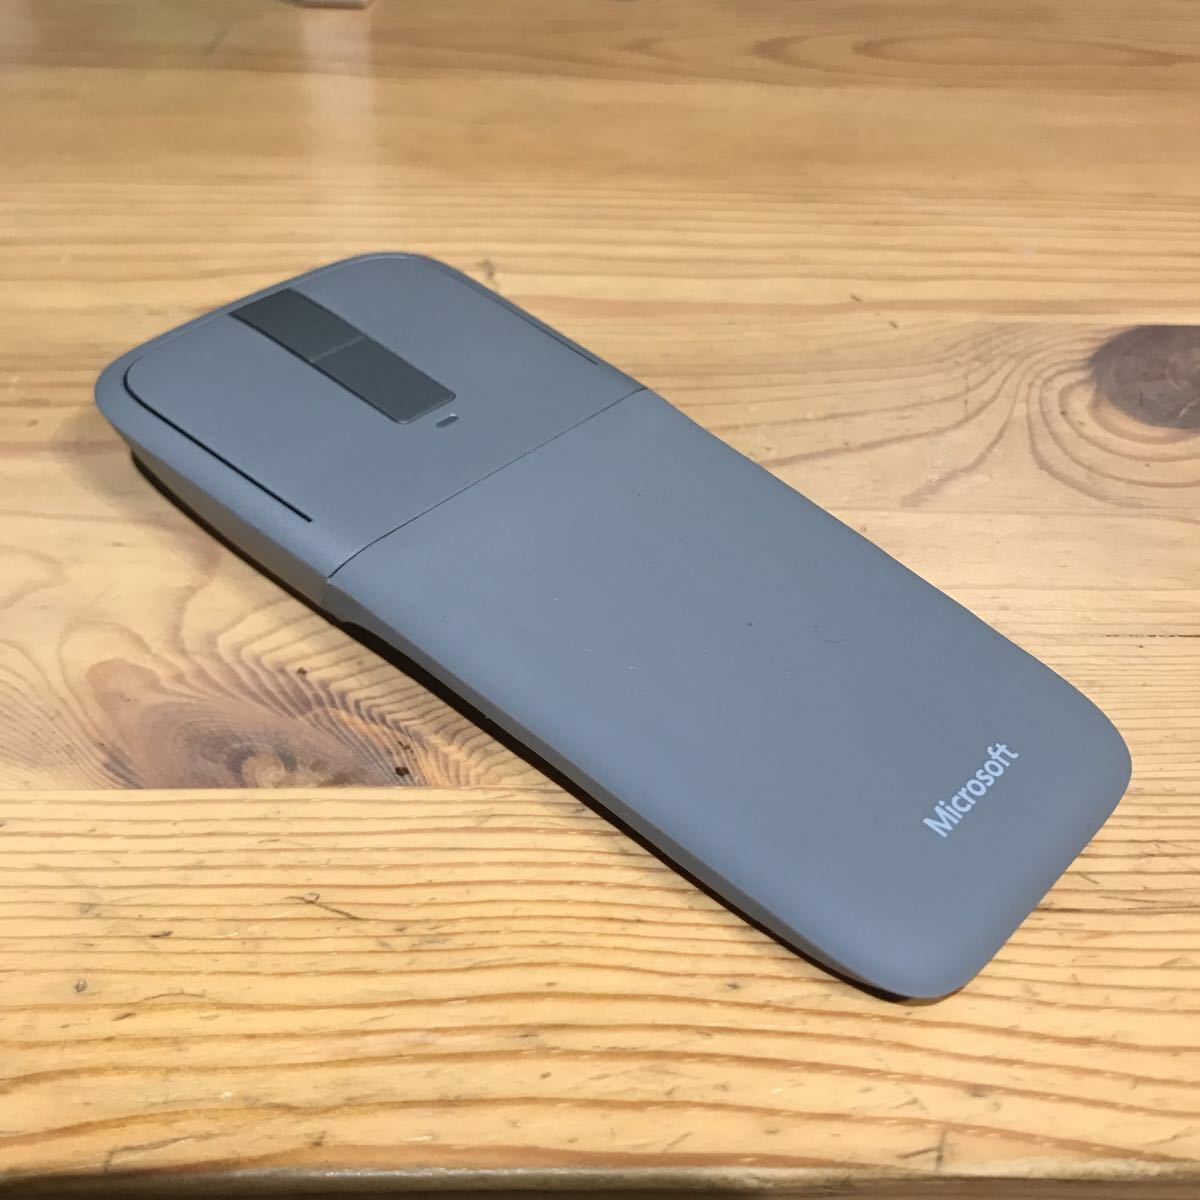 7MP-00008 マイクロソフト Bluetooth ワイヤレスマウス アーク Microsoft Bluetoothマウス Touch Mouse Surface